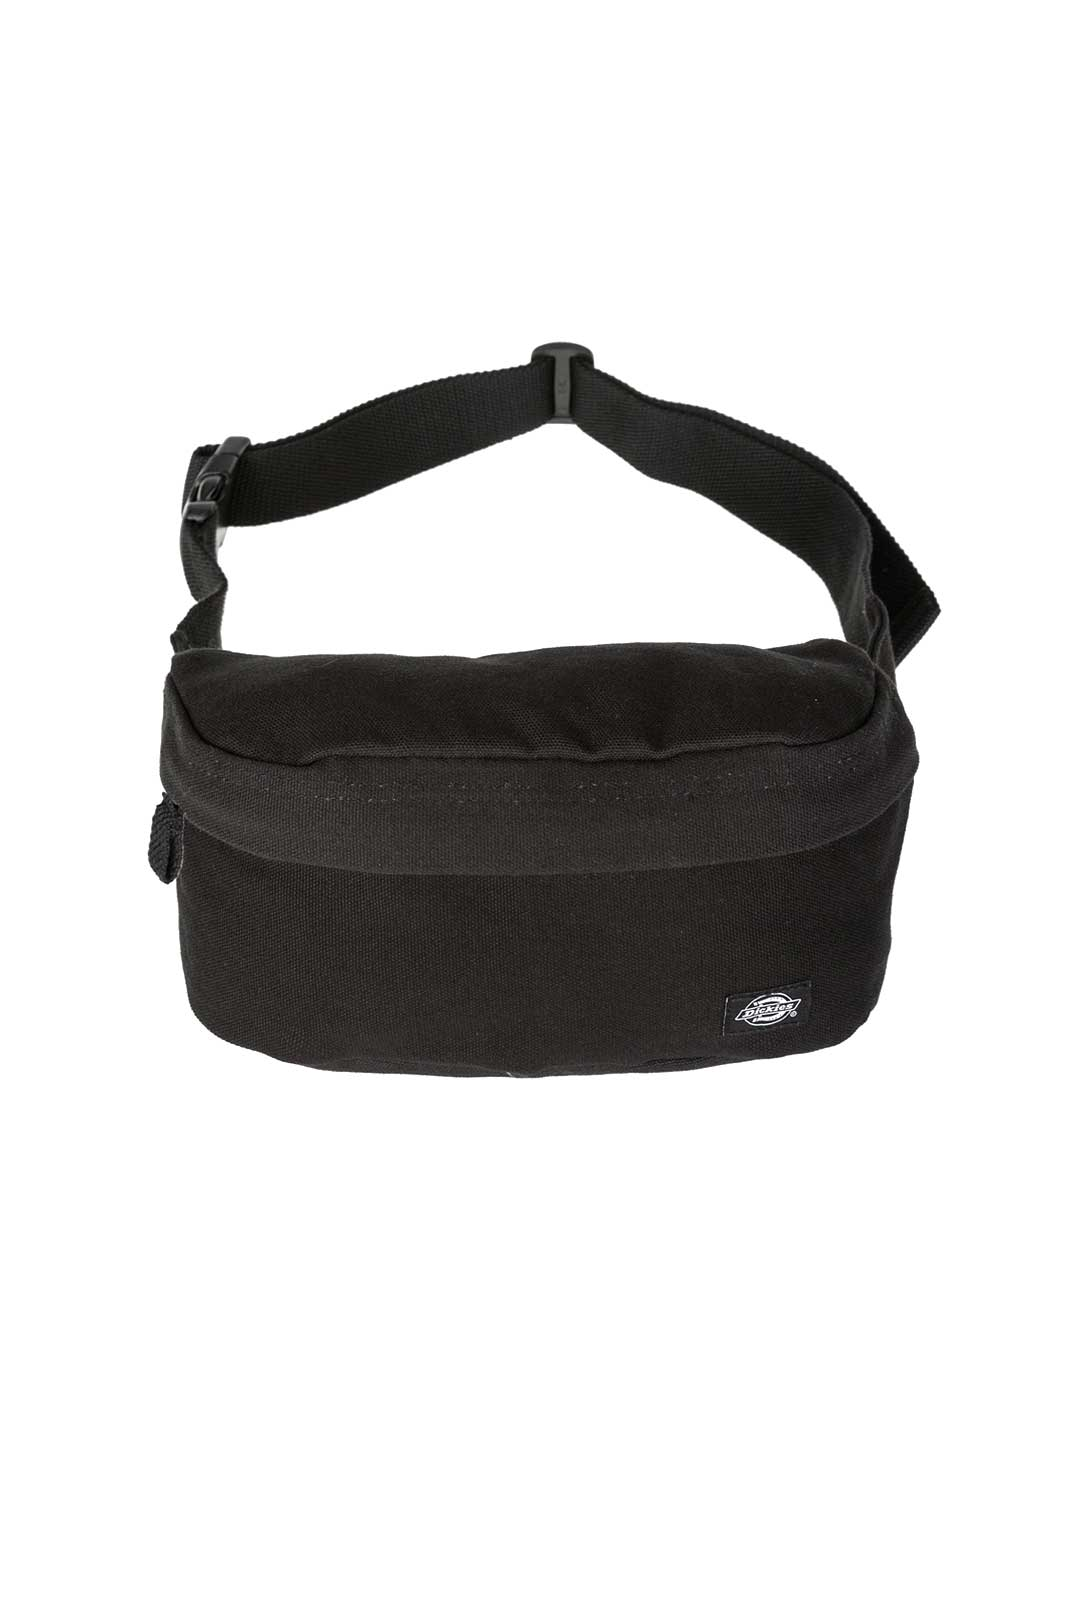 Dickies bag penwell black